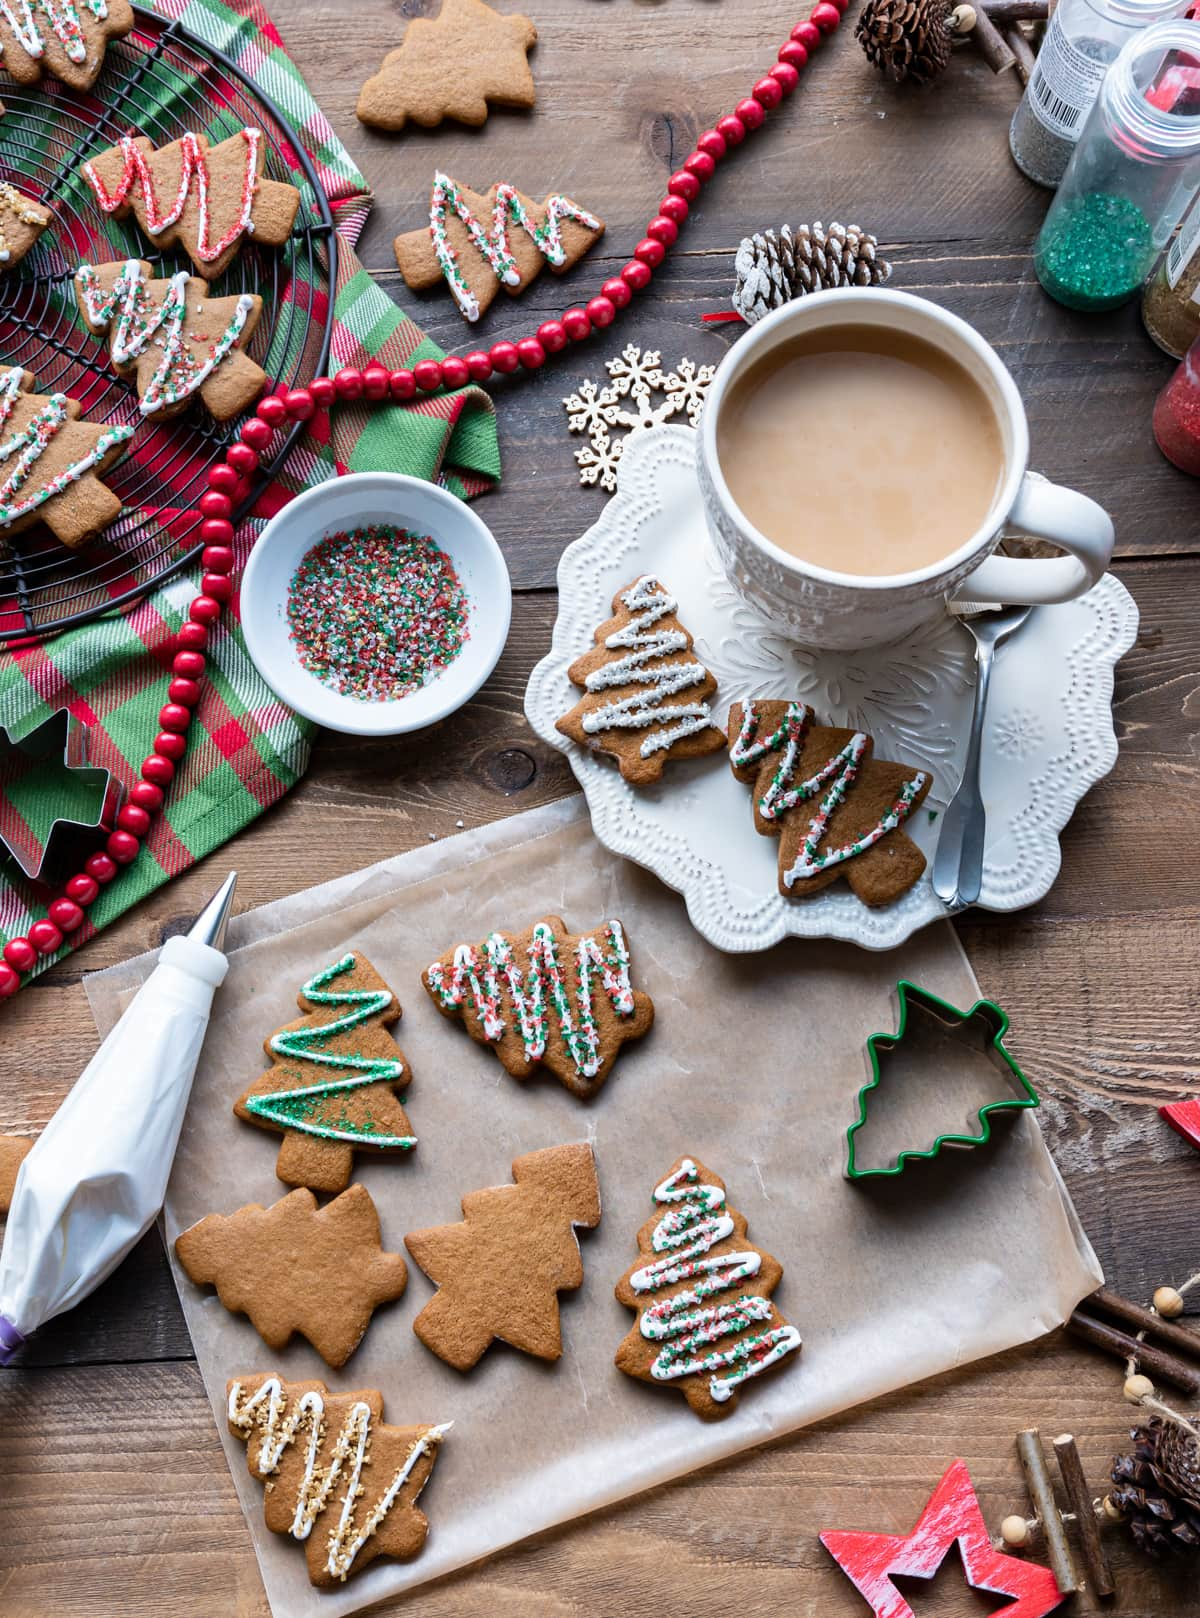 gingerbread christmas tree cut out cookies, cup of tea, cookie cutters, bowl of colored sugar